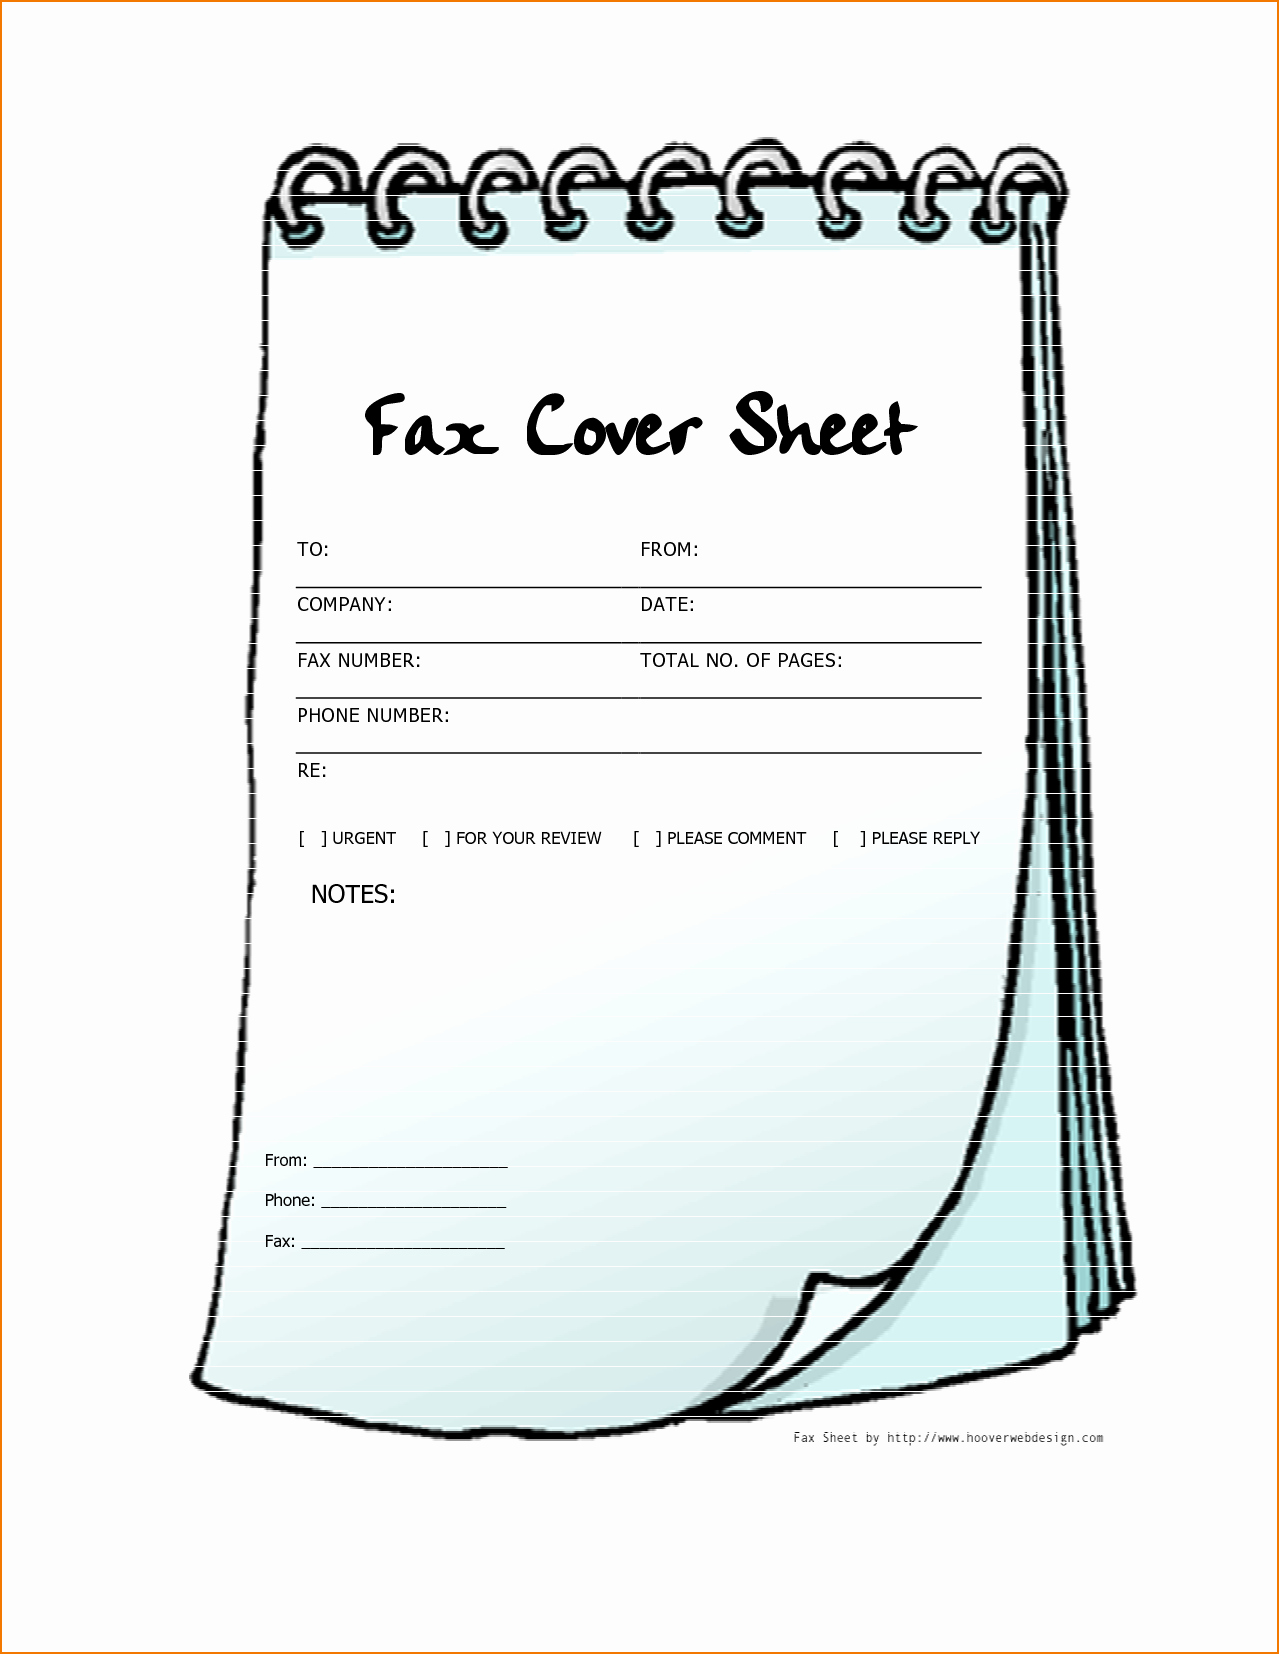 Fax Cover Sheet Printable Free Lovely 4 Printable Fax Cover Sheet Template